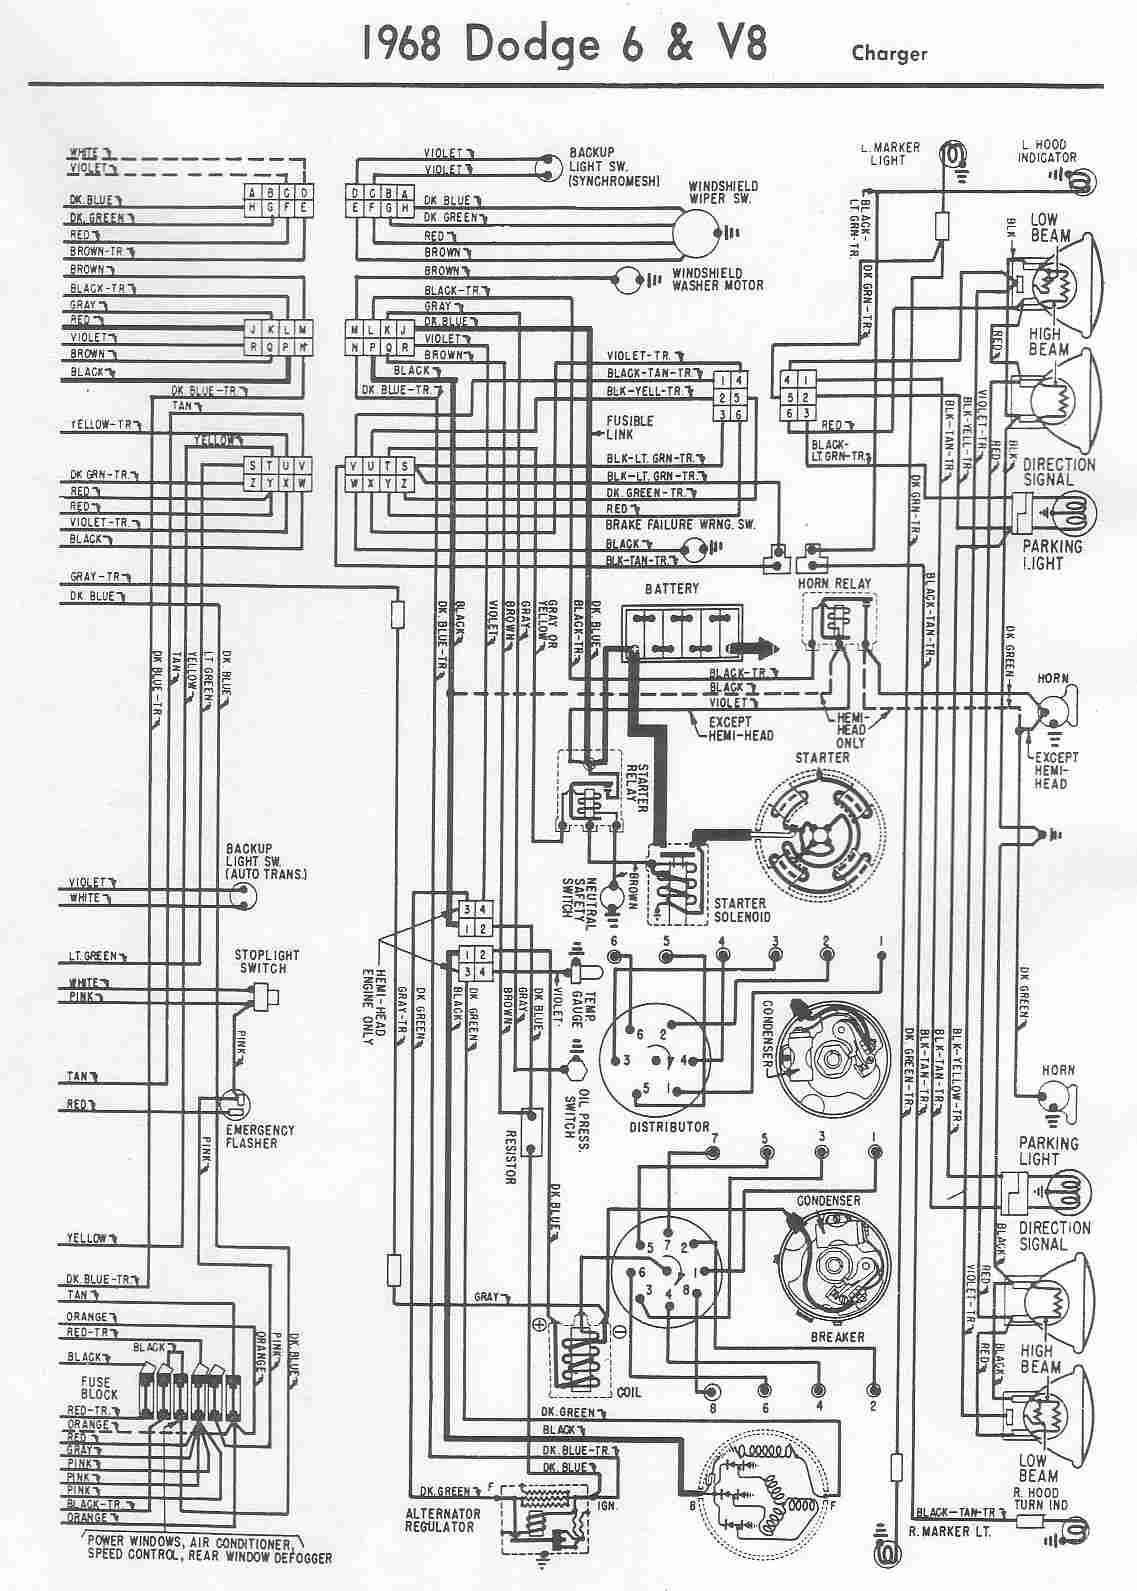 charger electrical wiring diagram of 1968 dodge 6 and v8?t\=1508404771 1970 dodge dart wiring diagram 1970 dodge dart colors \u2022 free 2008 dodge charger wiring diagram at cos-gaming.co